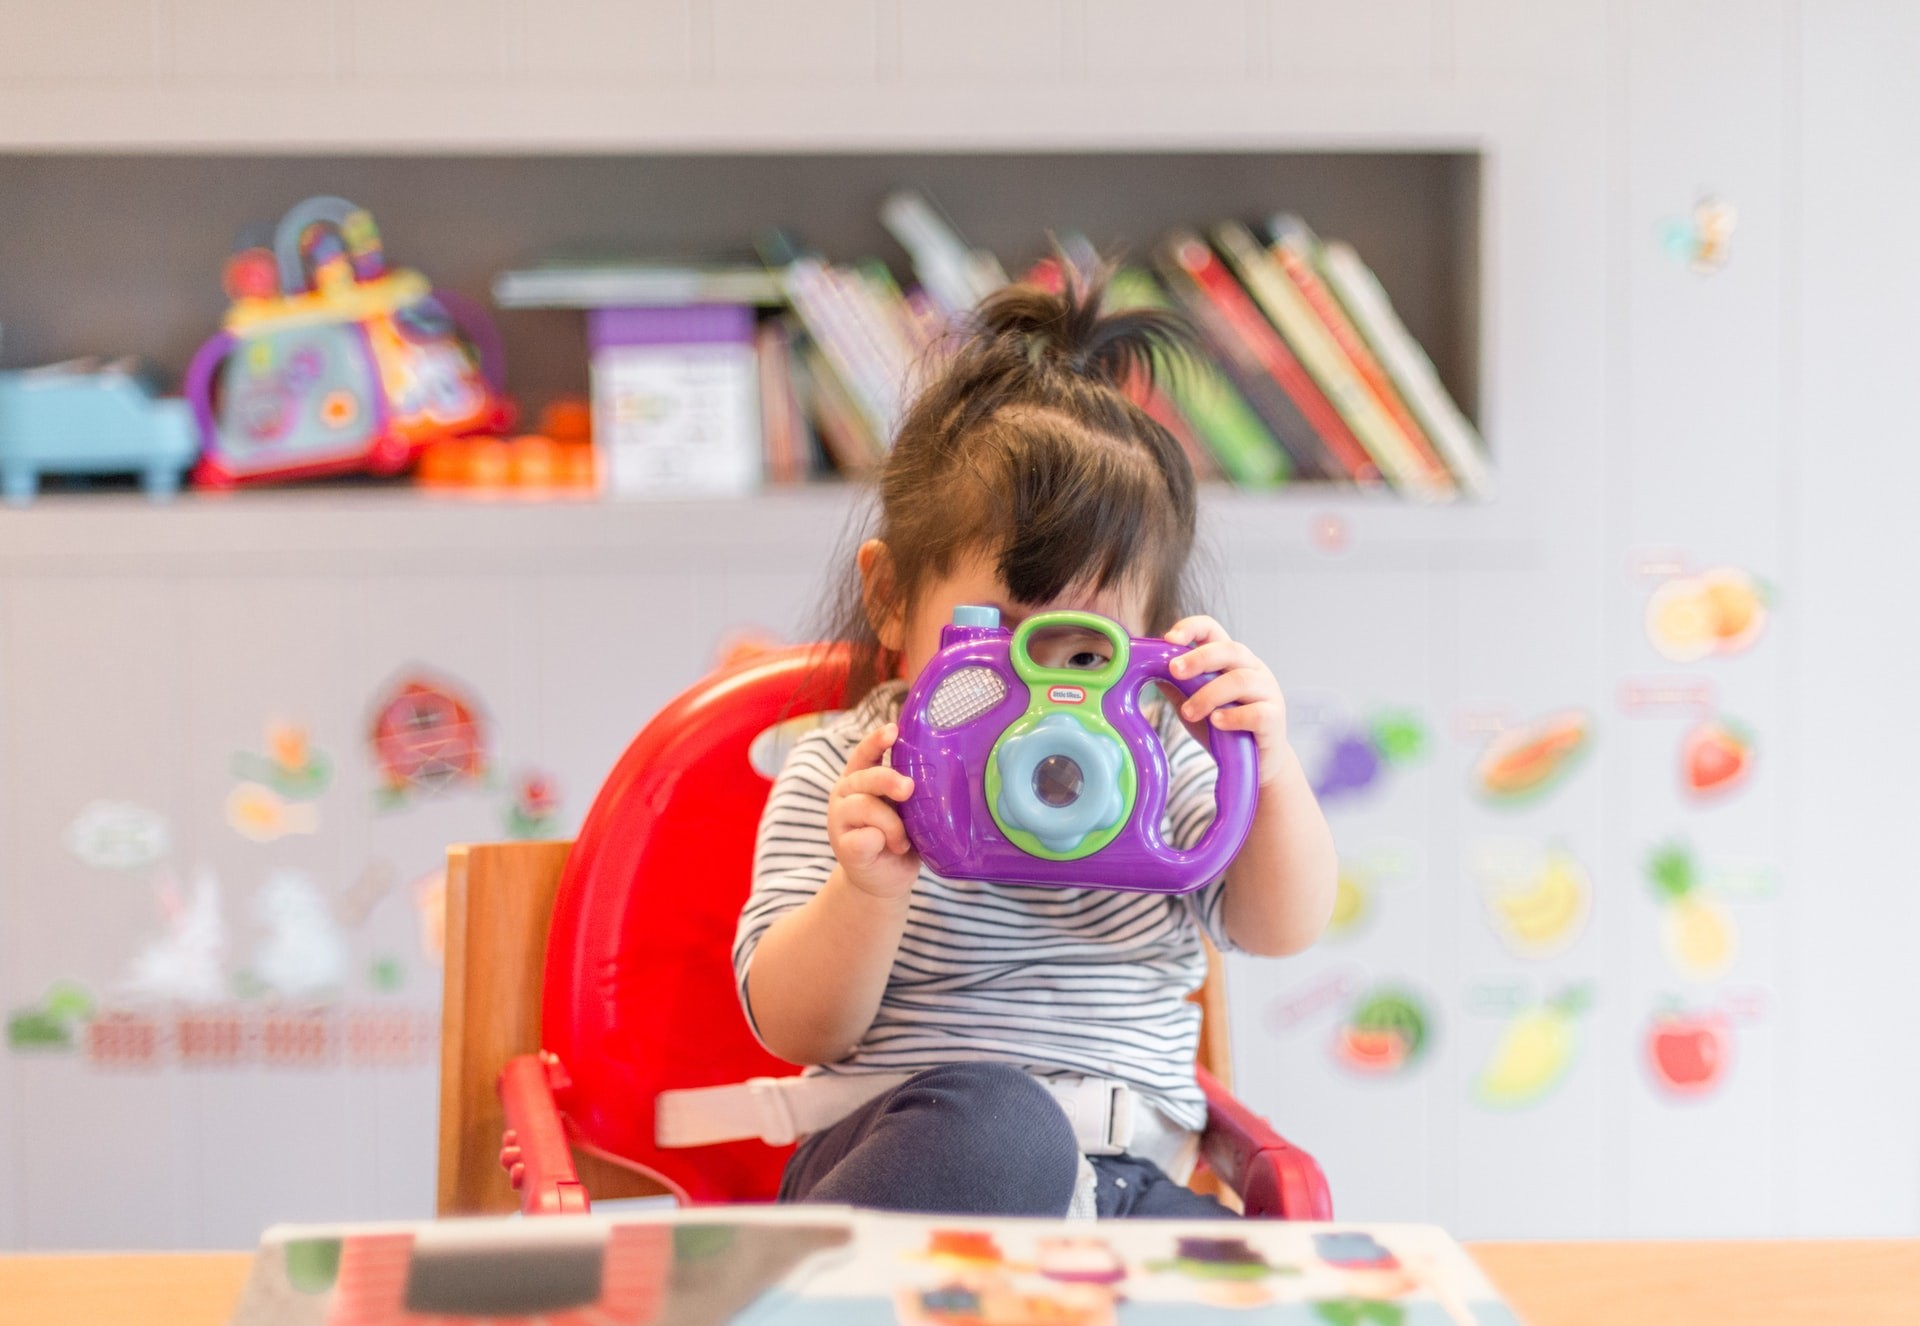 A young child plays with a toy camera in a classroom using play-based learning activities.